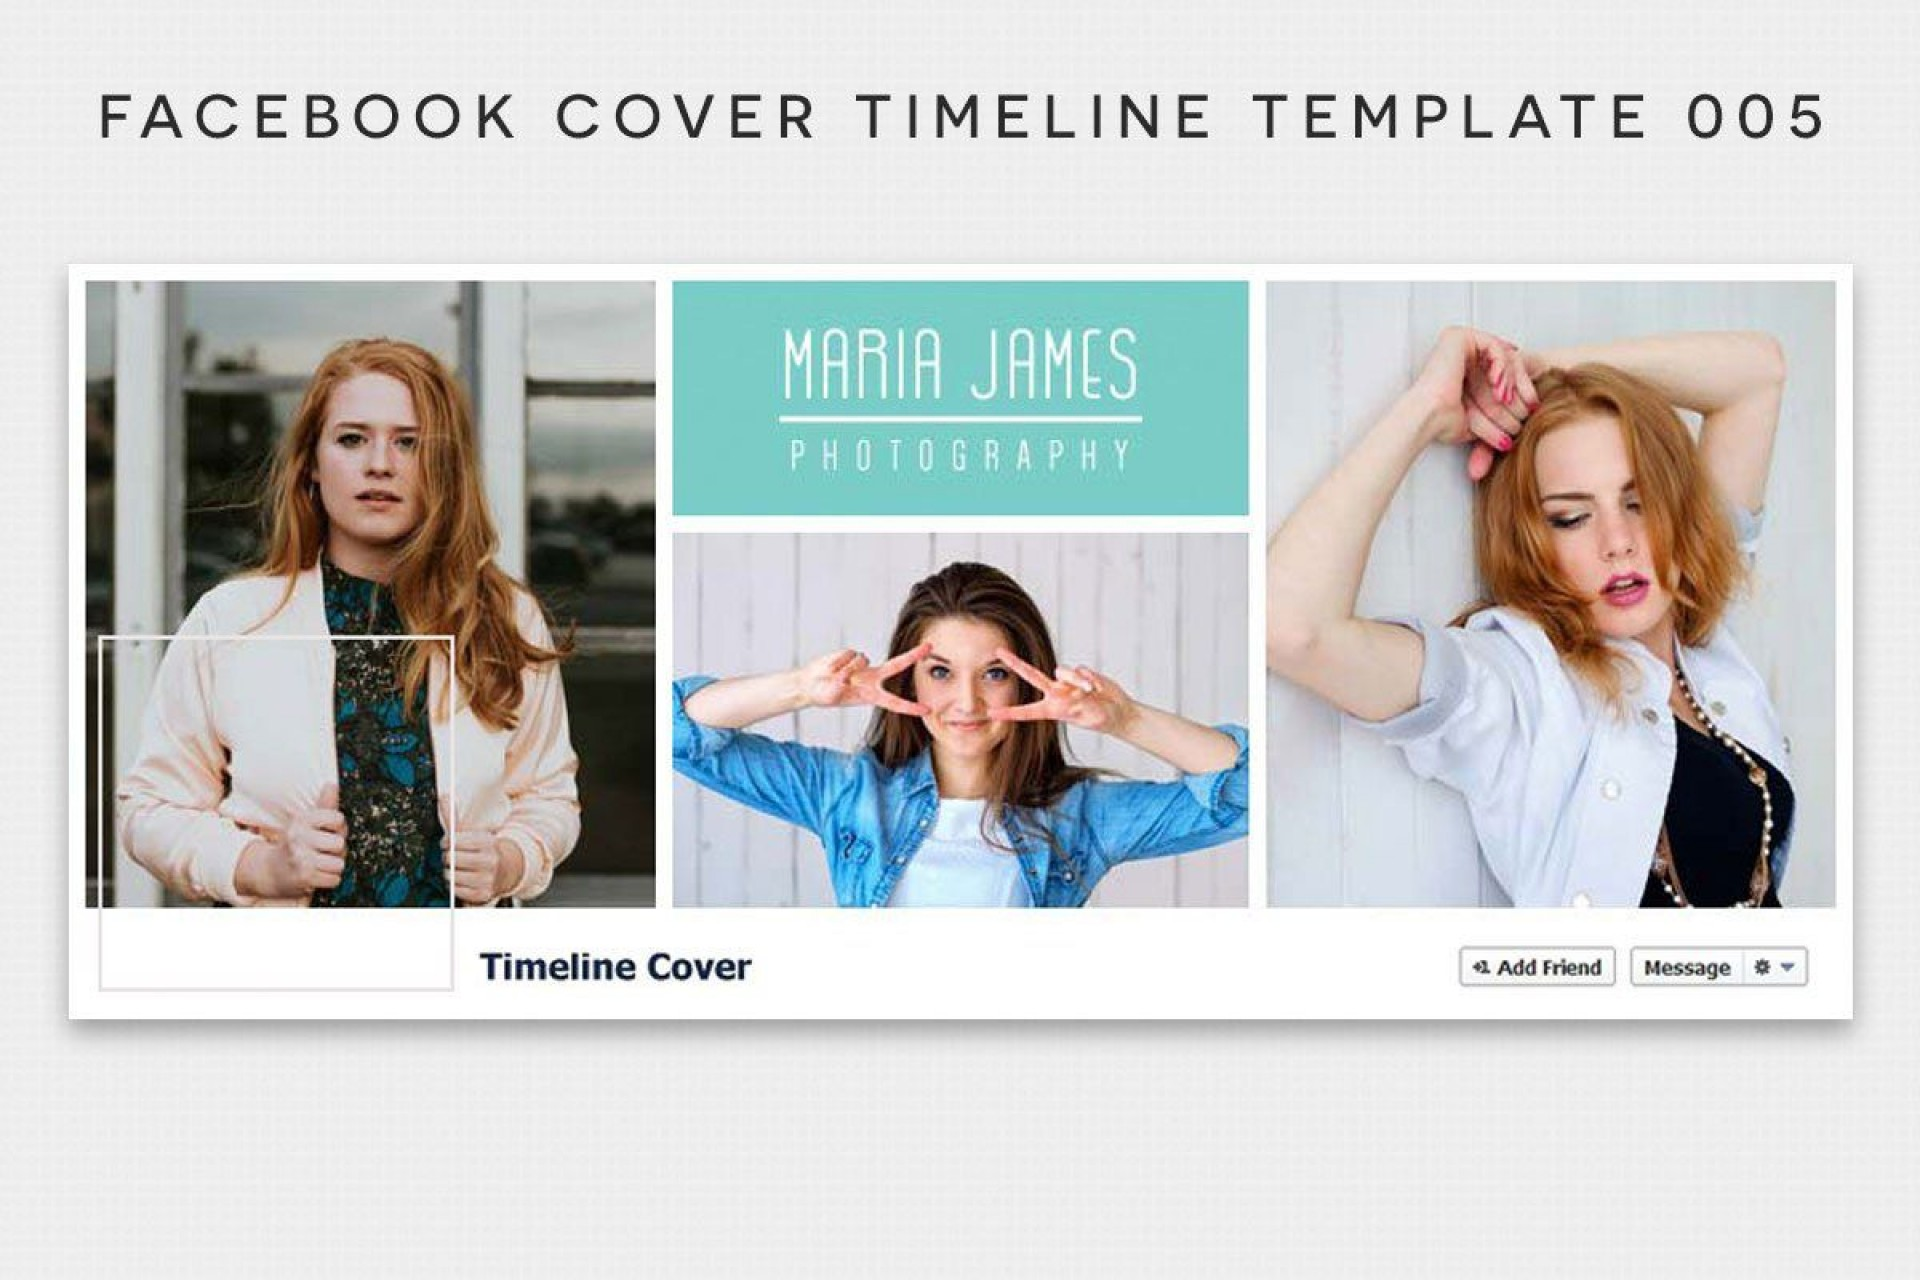 004 Impressive Free Facebook Cover Template High Resolution  Templates Photoshop1920